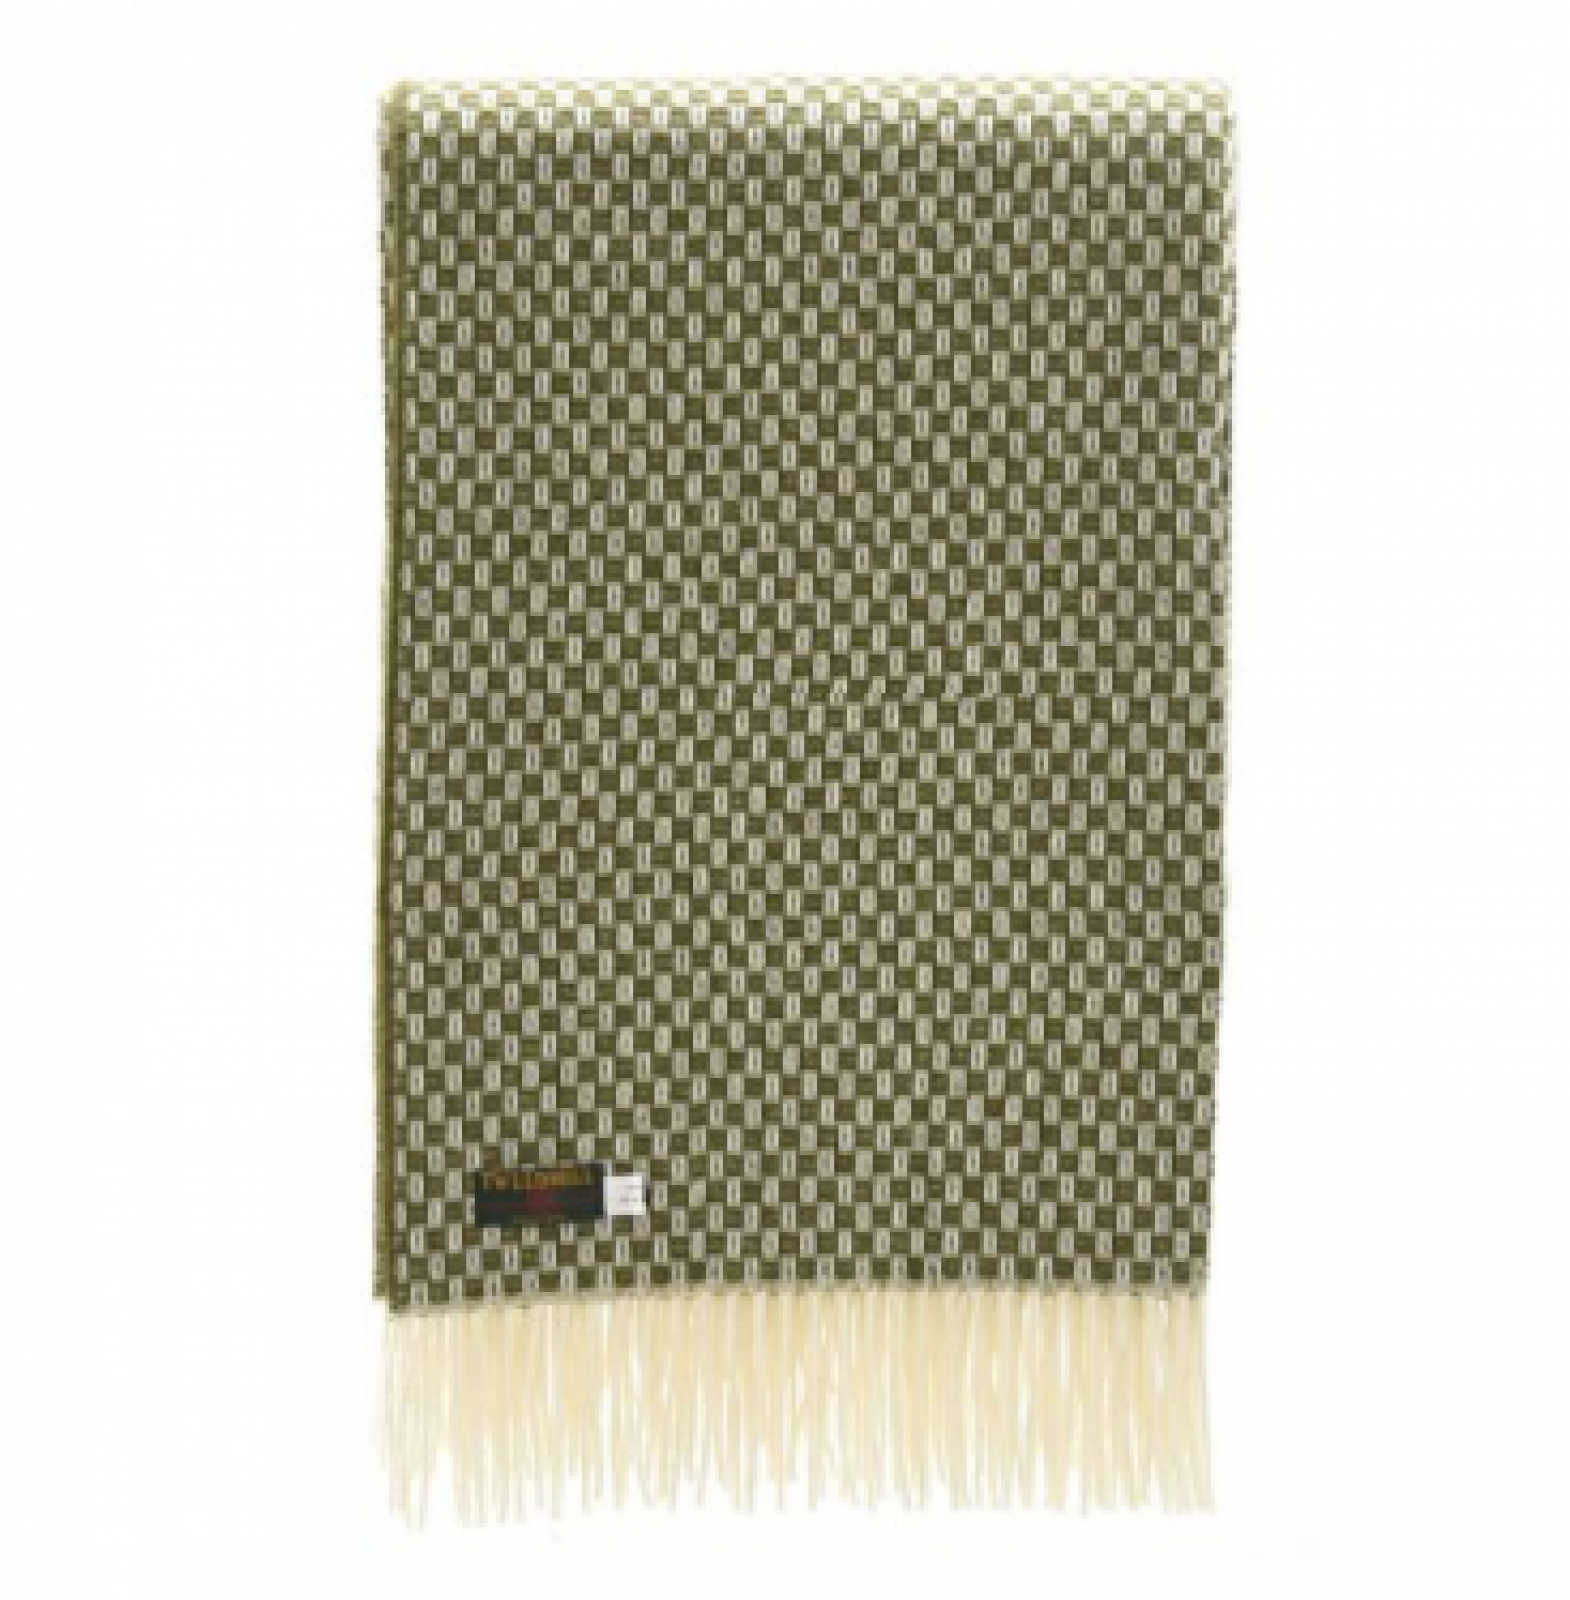 Merino Wool Willow Olive Green Blanket 140x180cm thumbnails